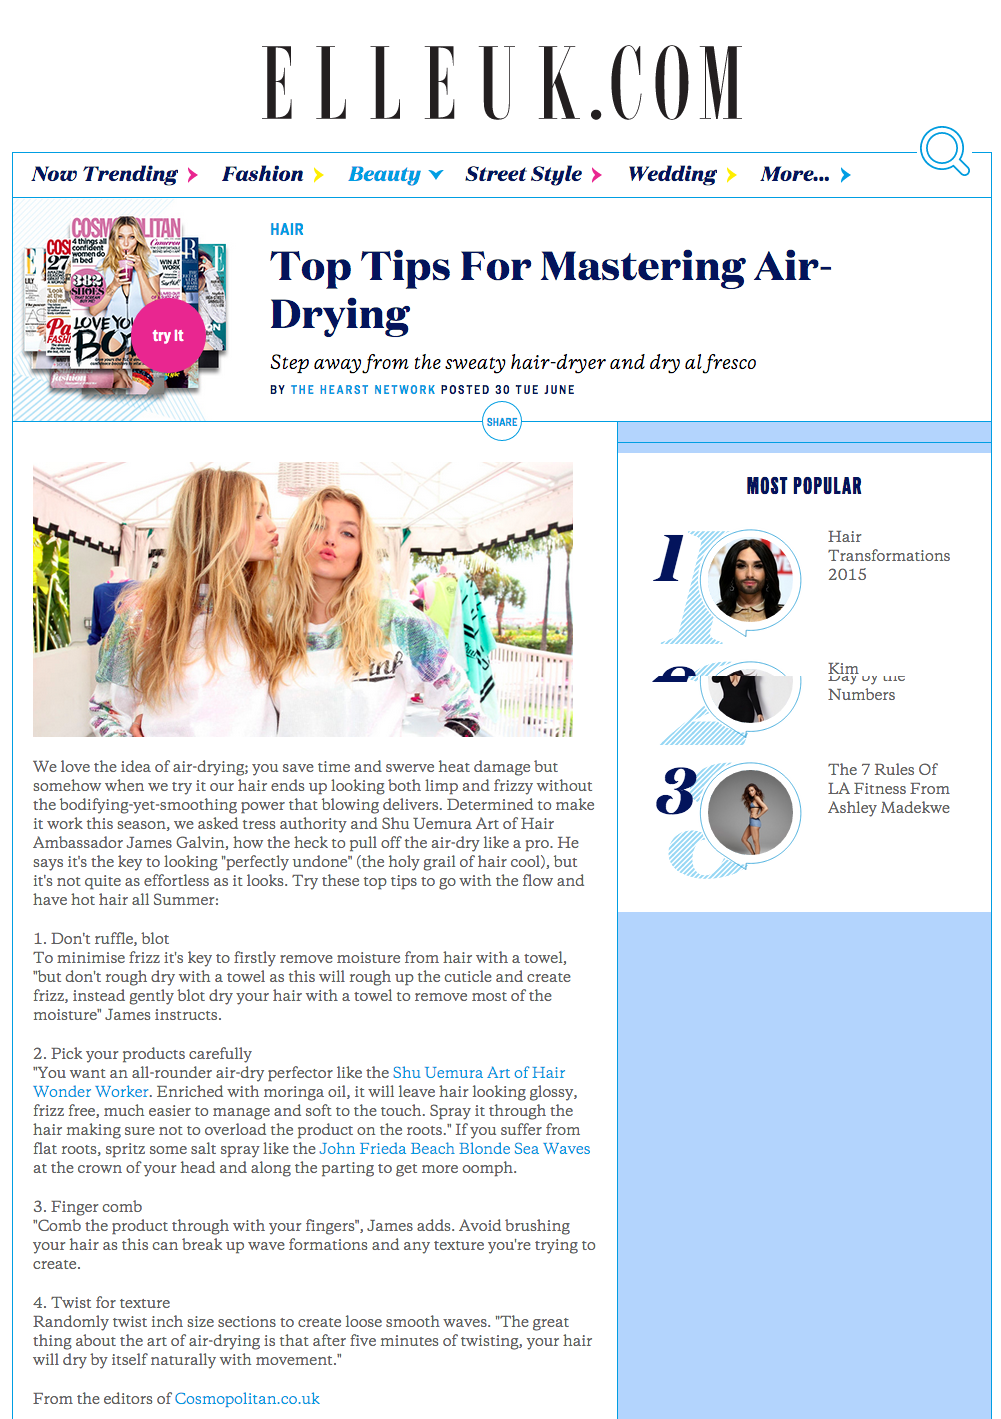 Top Tips For Mastering Air Drying   Fashion  Trends  Beauty Tips   Celebrity Style Magazine   ELLE UK